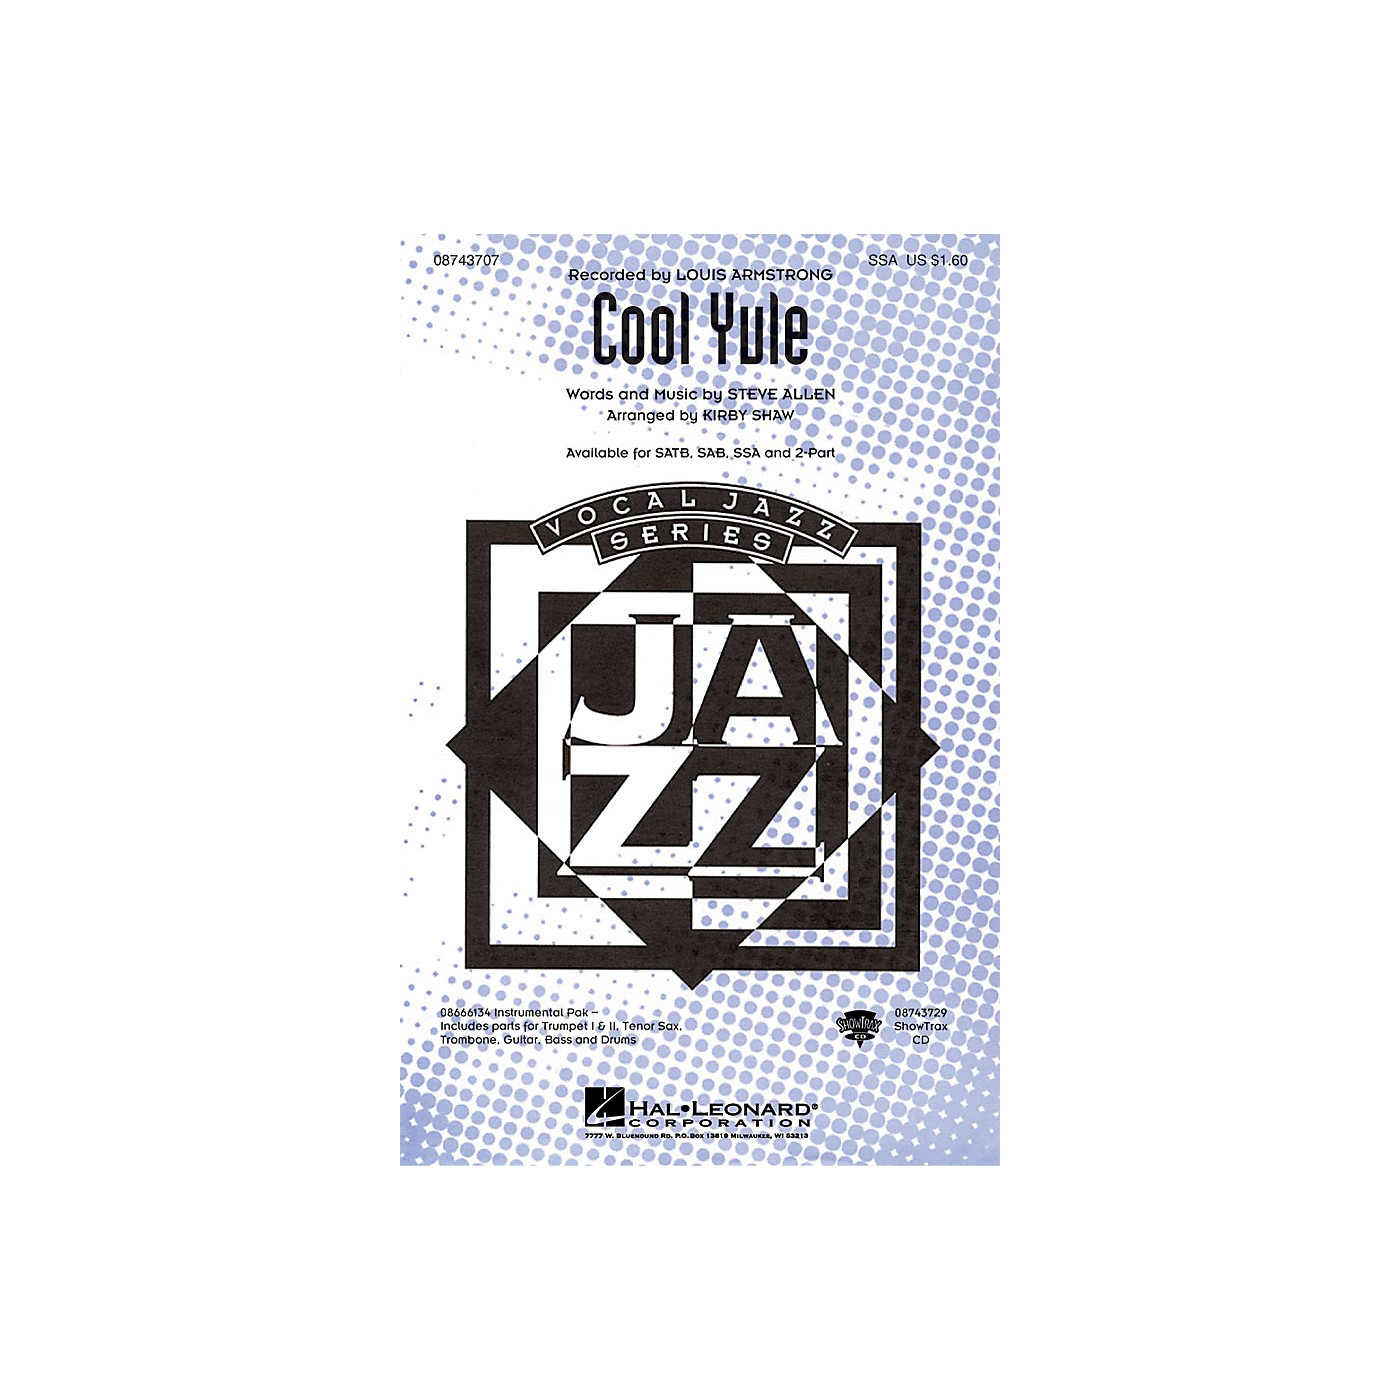 Hal Leonard Cool Yule ShowTrax CD by Louis Armstrong Arranged by Kirby Shaw thumbnail